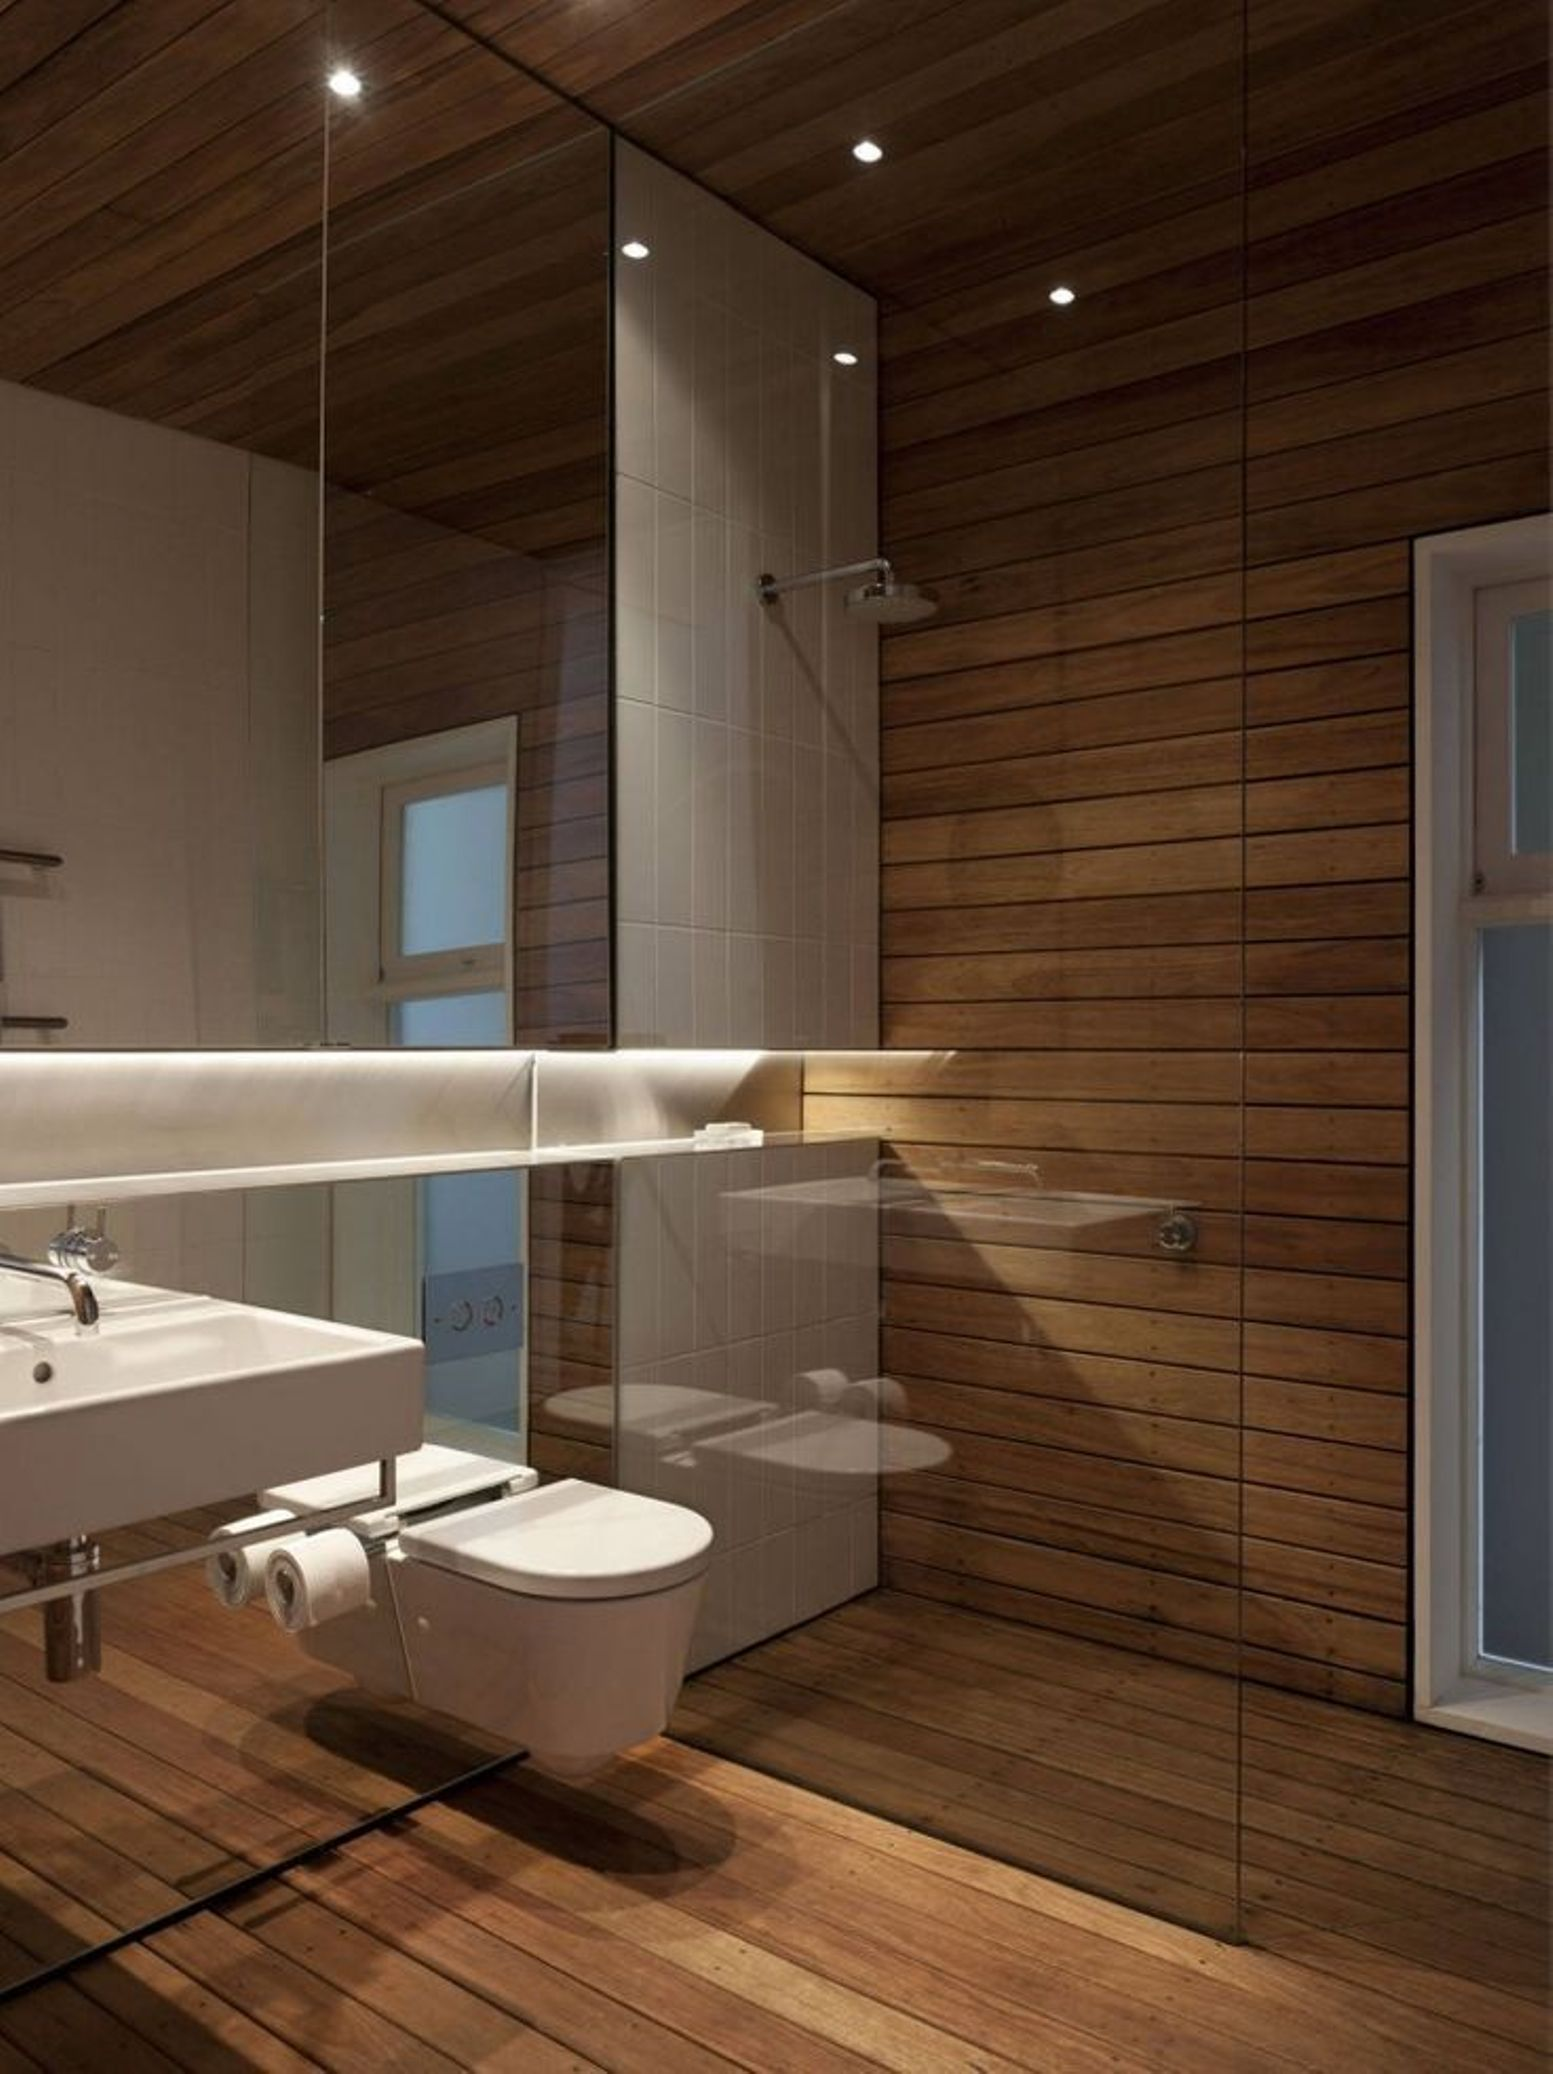 Bathroom , Recessed Bathroom Lighting Fixtures : Modern Bathroom With Recessed Bathroom Lighting Fixtures And White Floating Toilet And Wall Mounted Sink Into Mirror And Wood Paneling Walls And Wood Floor To Ceiling With Large Mirror